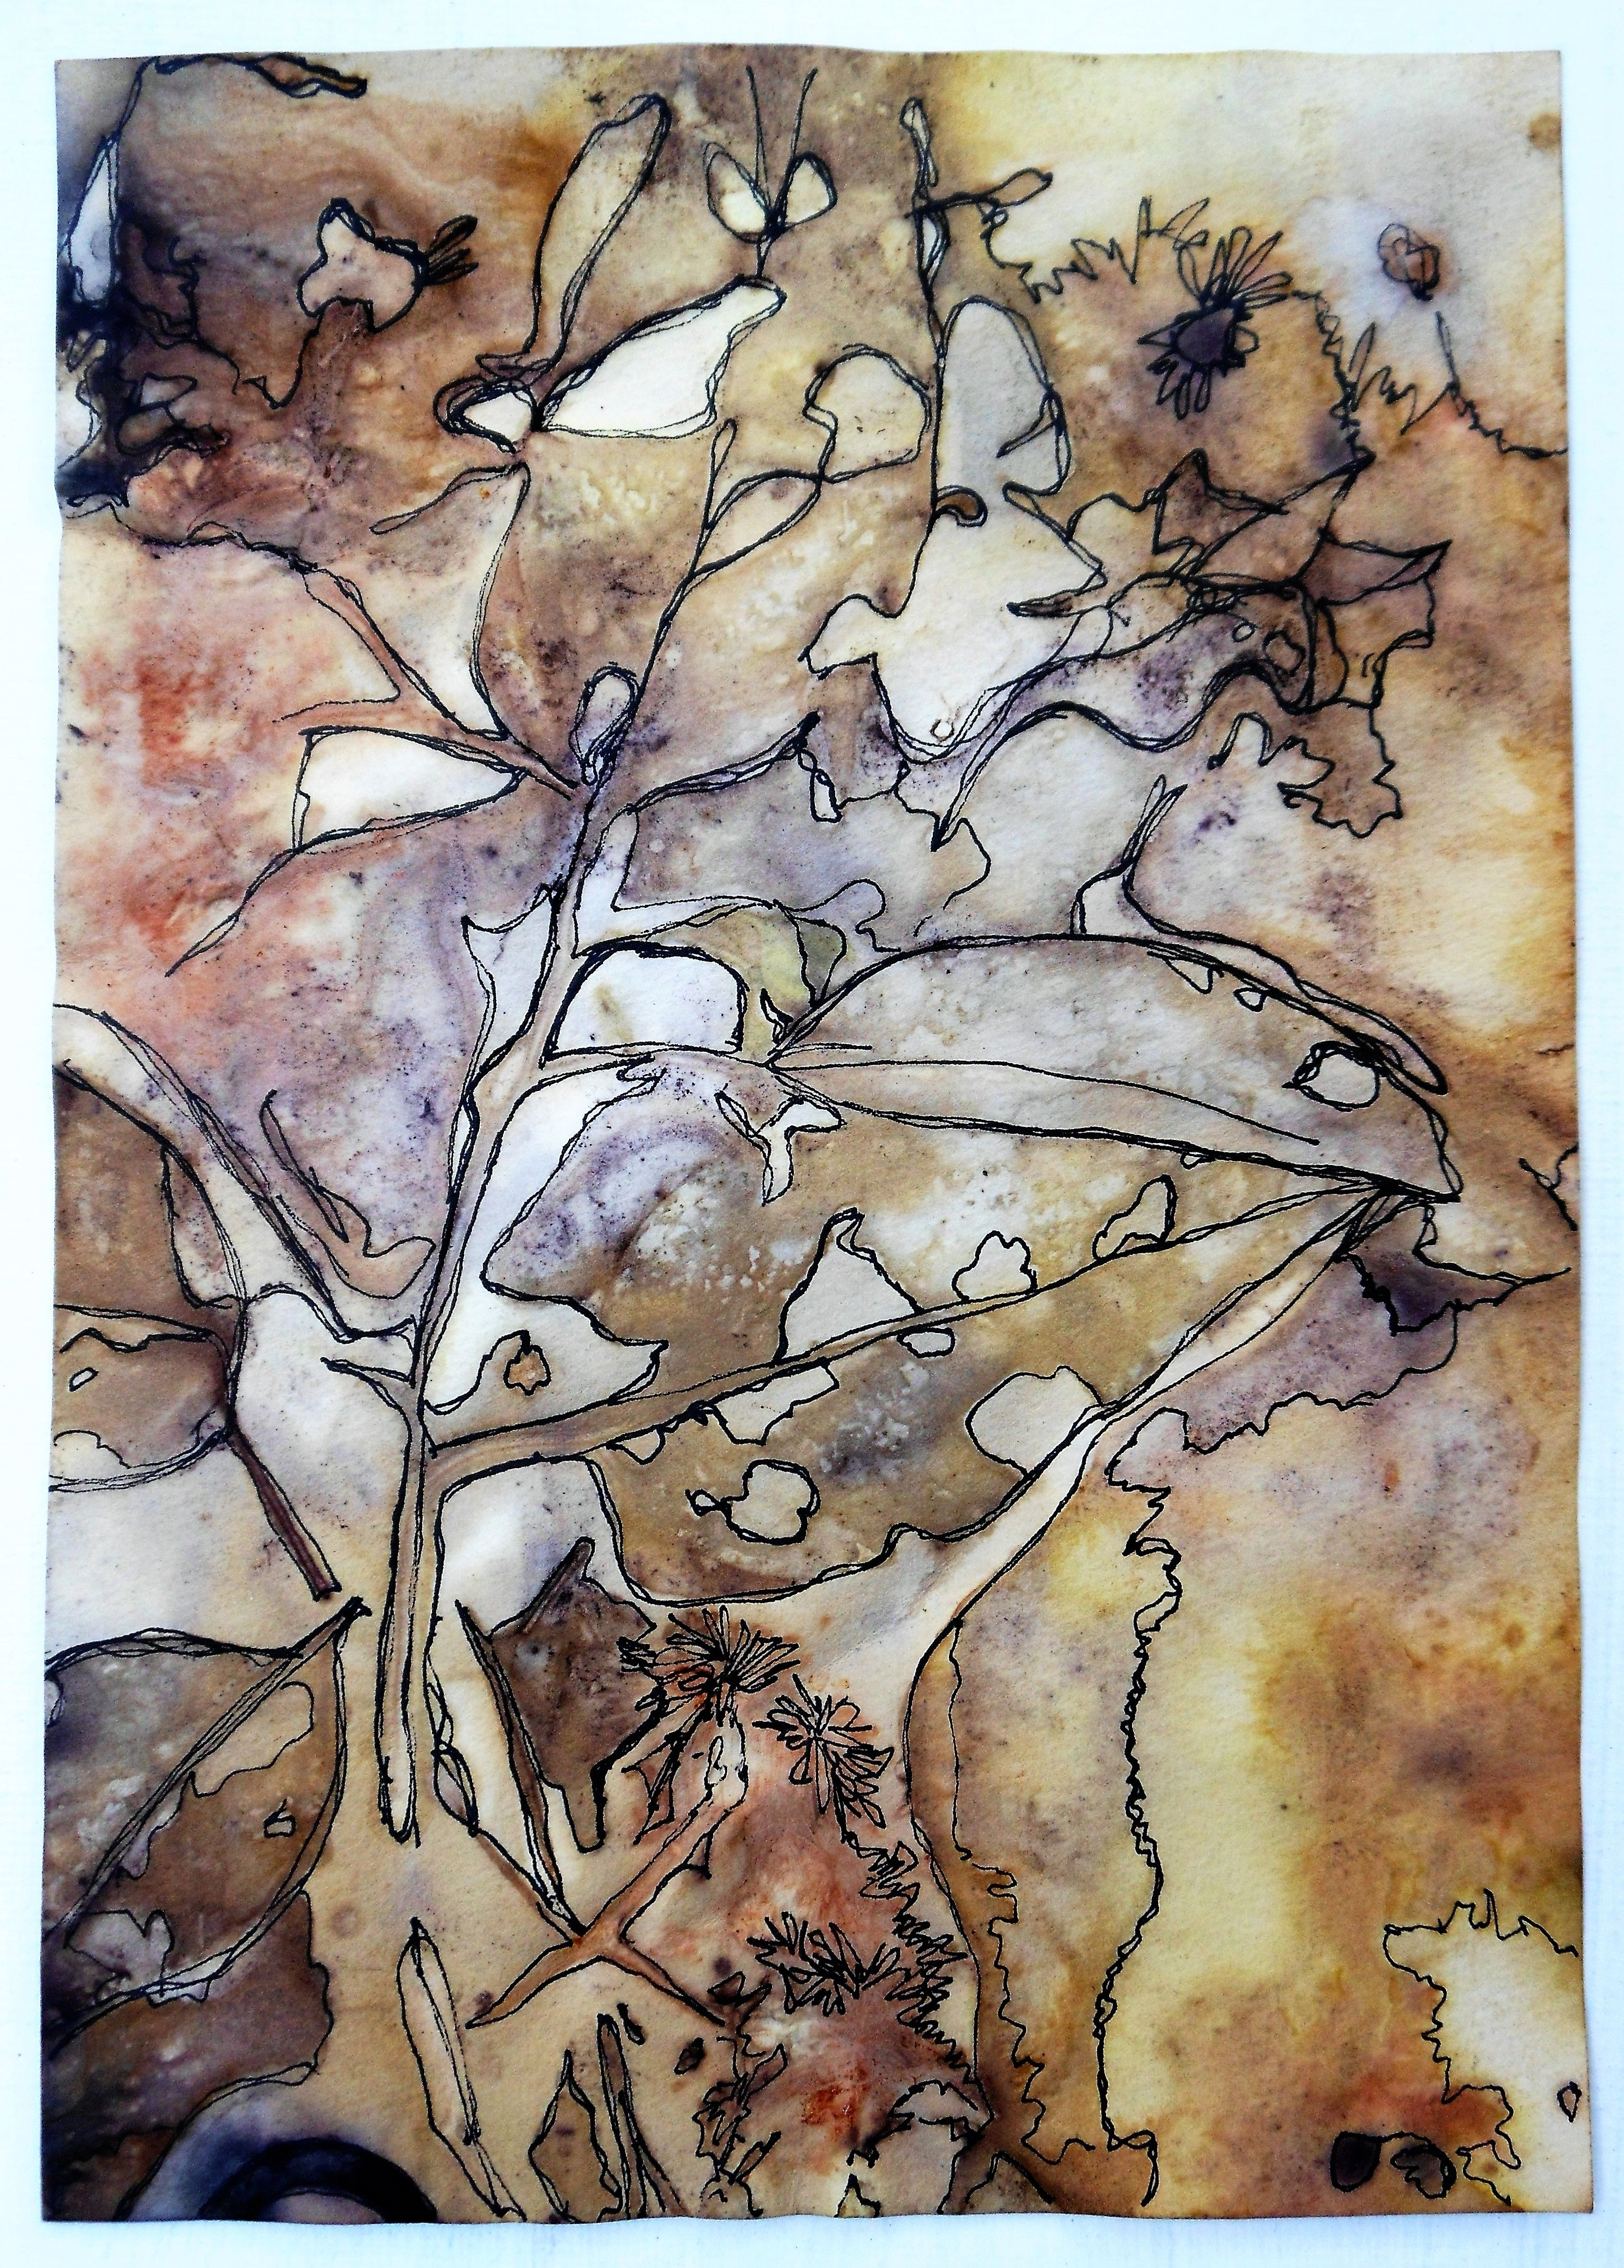 Eco Printed Paper And Ink Drawing By Cherie Livni Eco Printing